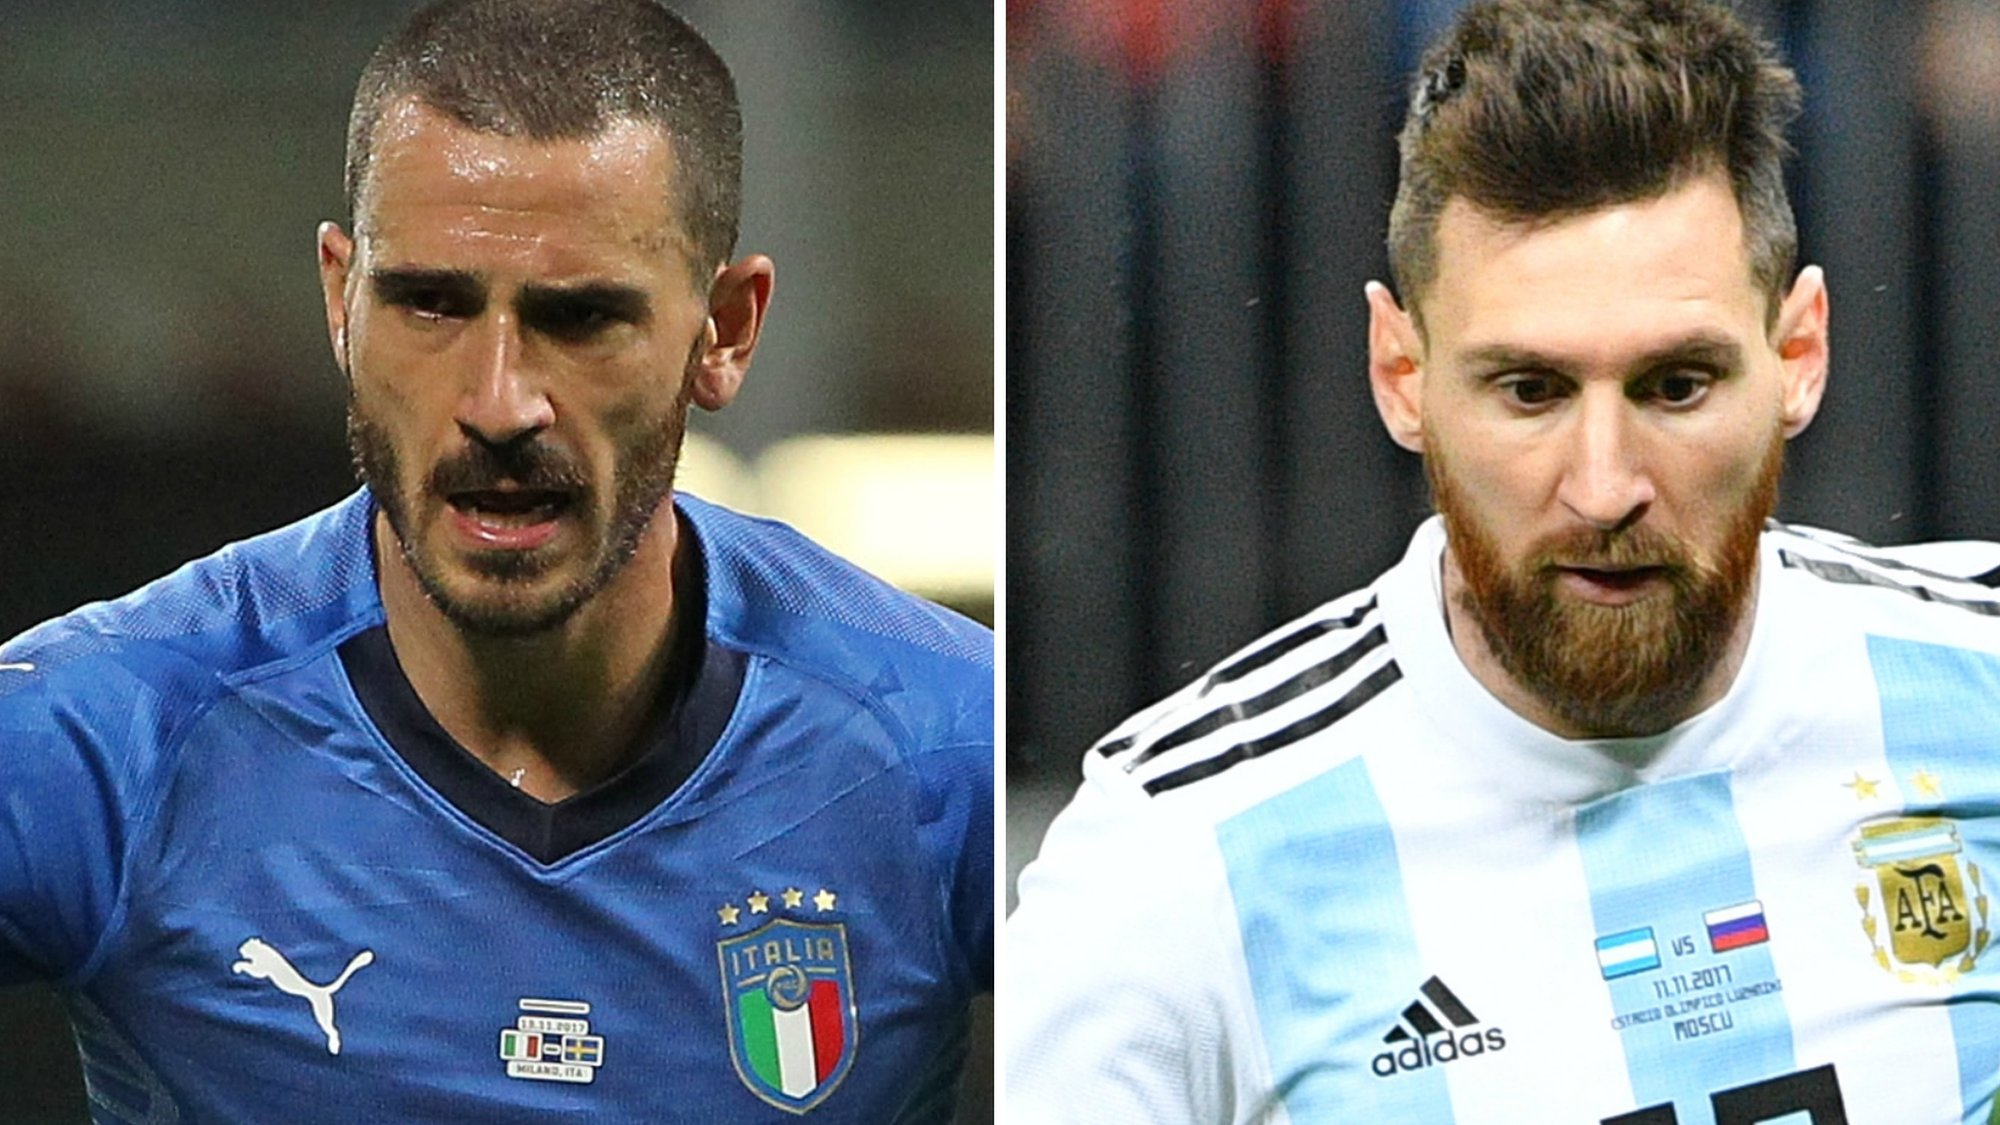 Italy and Argentina to play a friendly match at Manchester City's Etihad Stadium